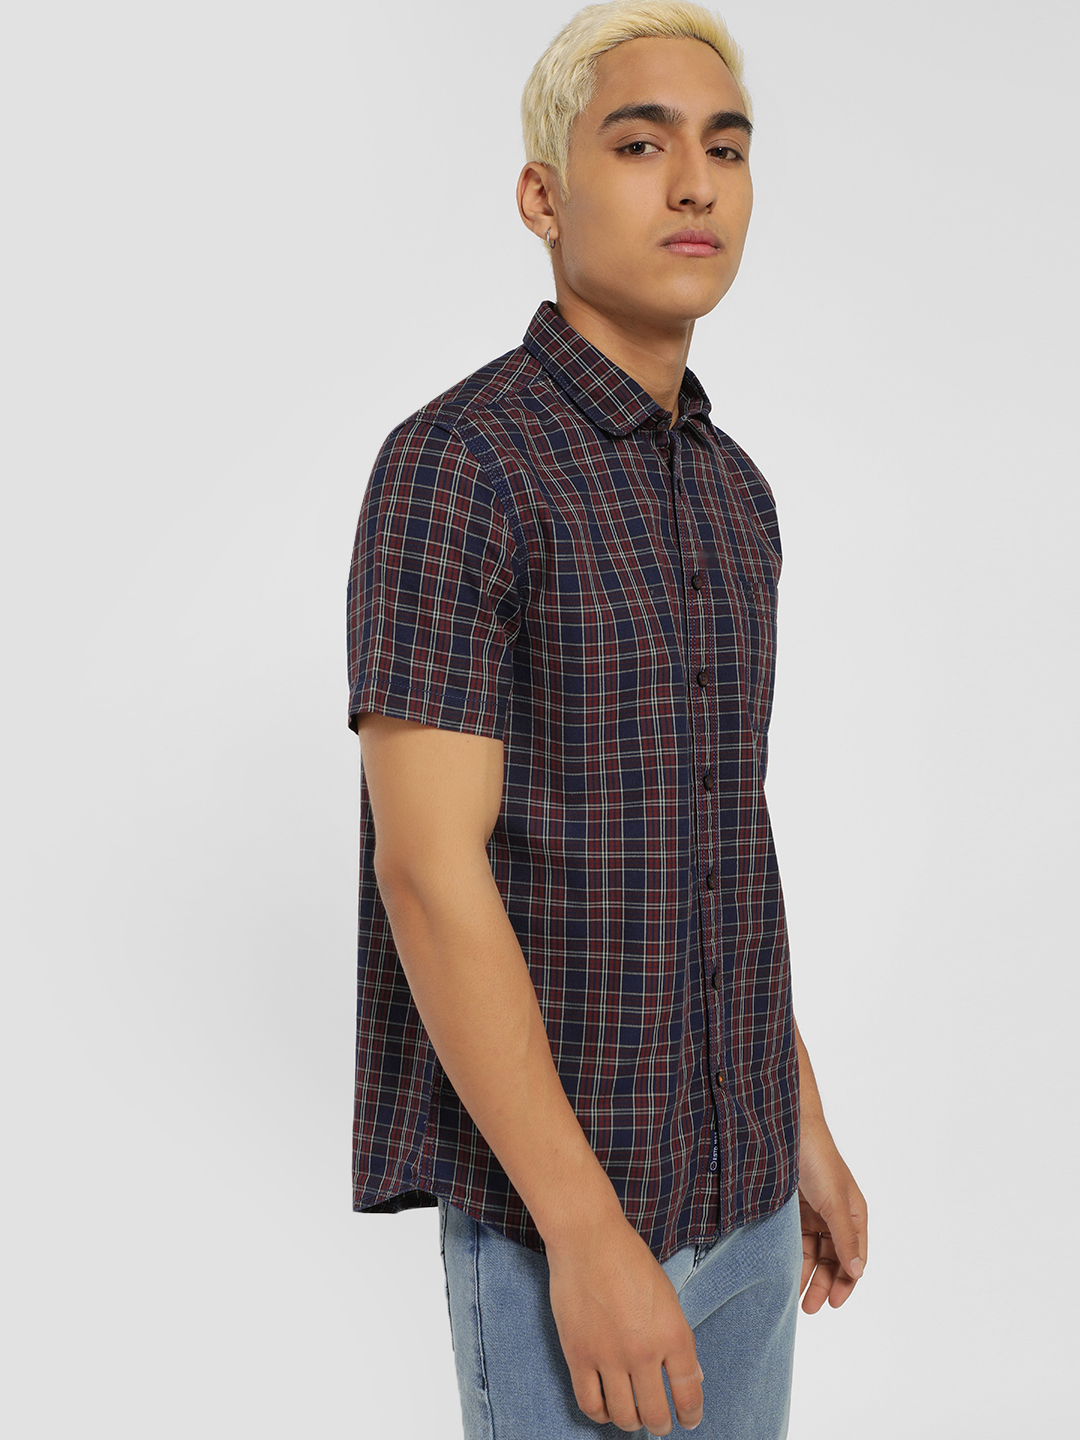 SCULLERS Blue Multi-Check Print Casual Shirt 1